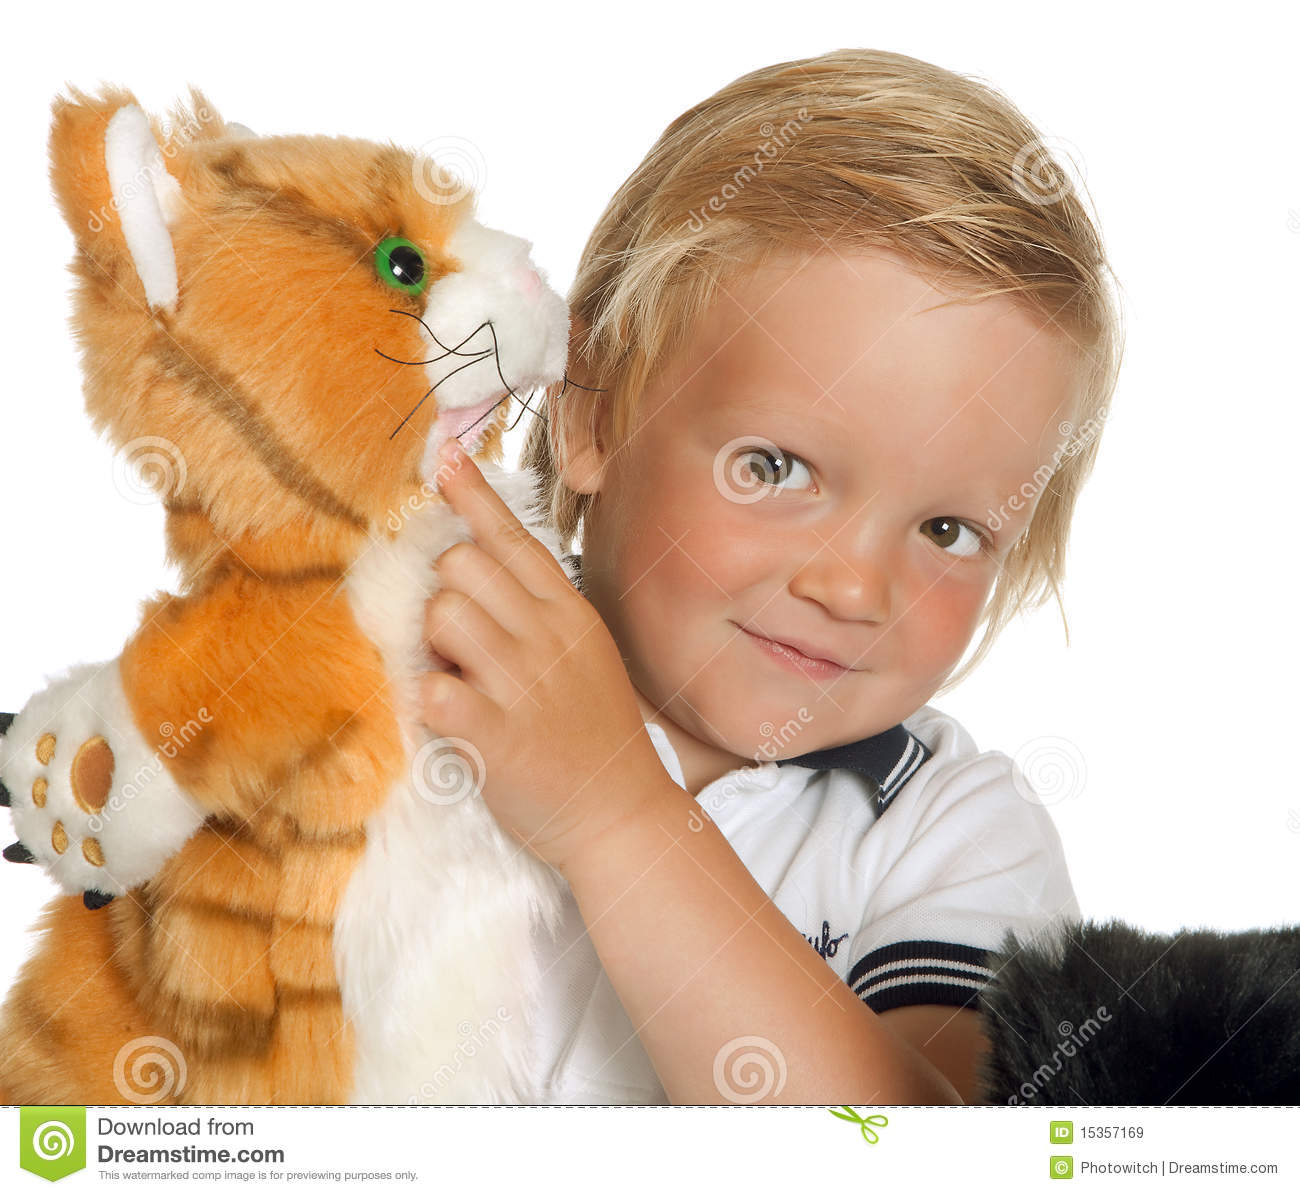 Boy's Fantasy Play Royalty Free Stock Images - Image: 15357169